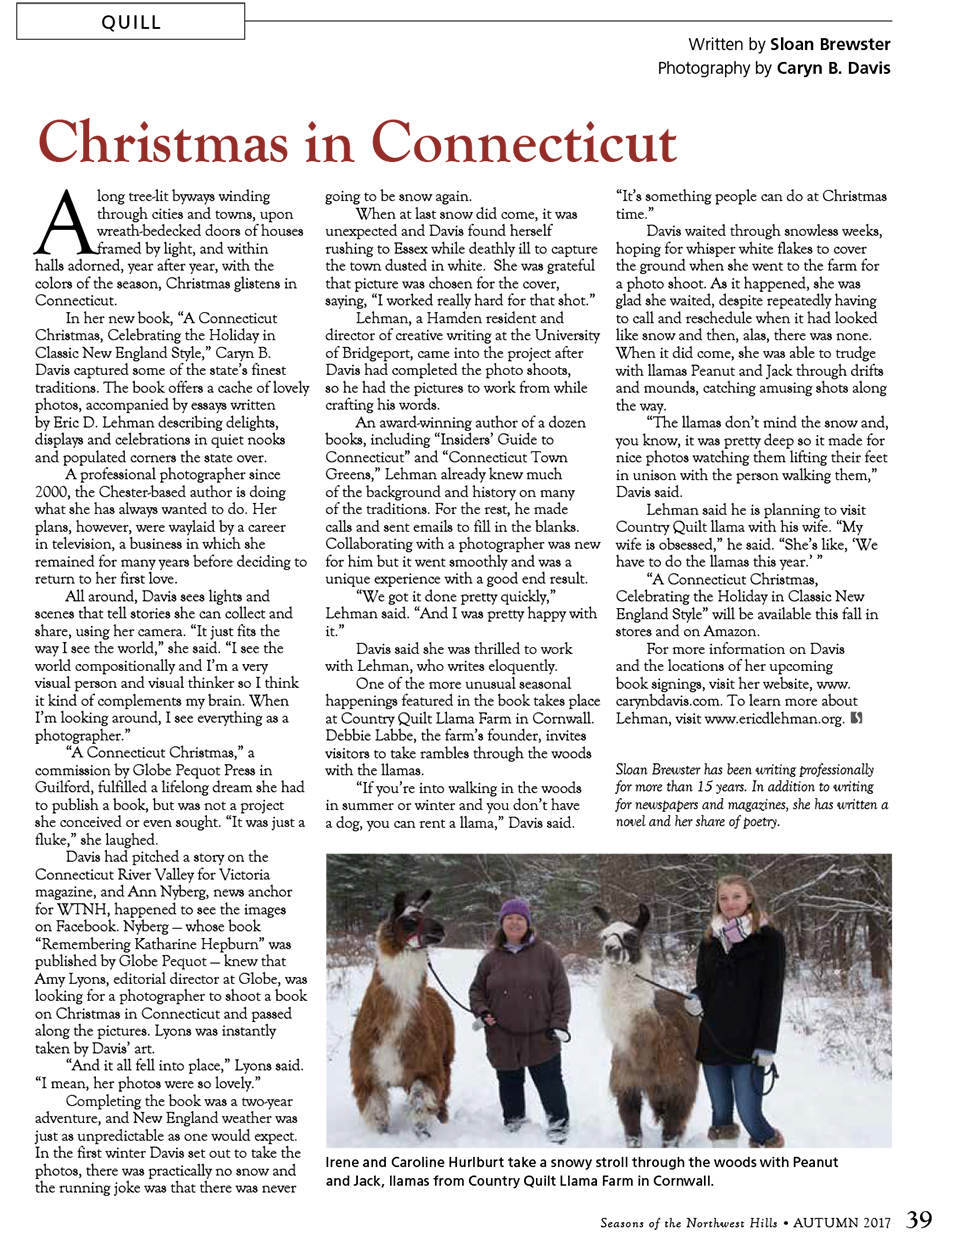 Seasons-Magazine-Caryn-B-Davis-A-Connecticut-Christmas-Country-Quilt-Llama